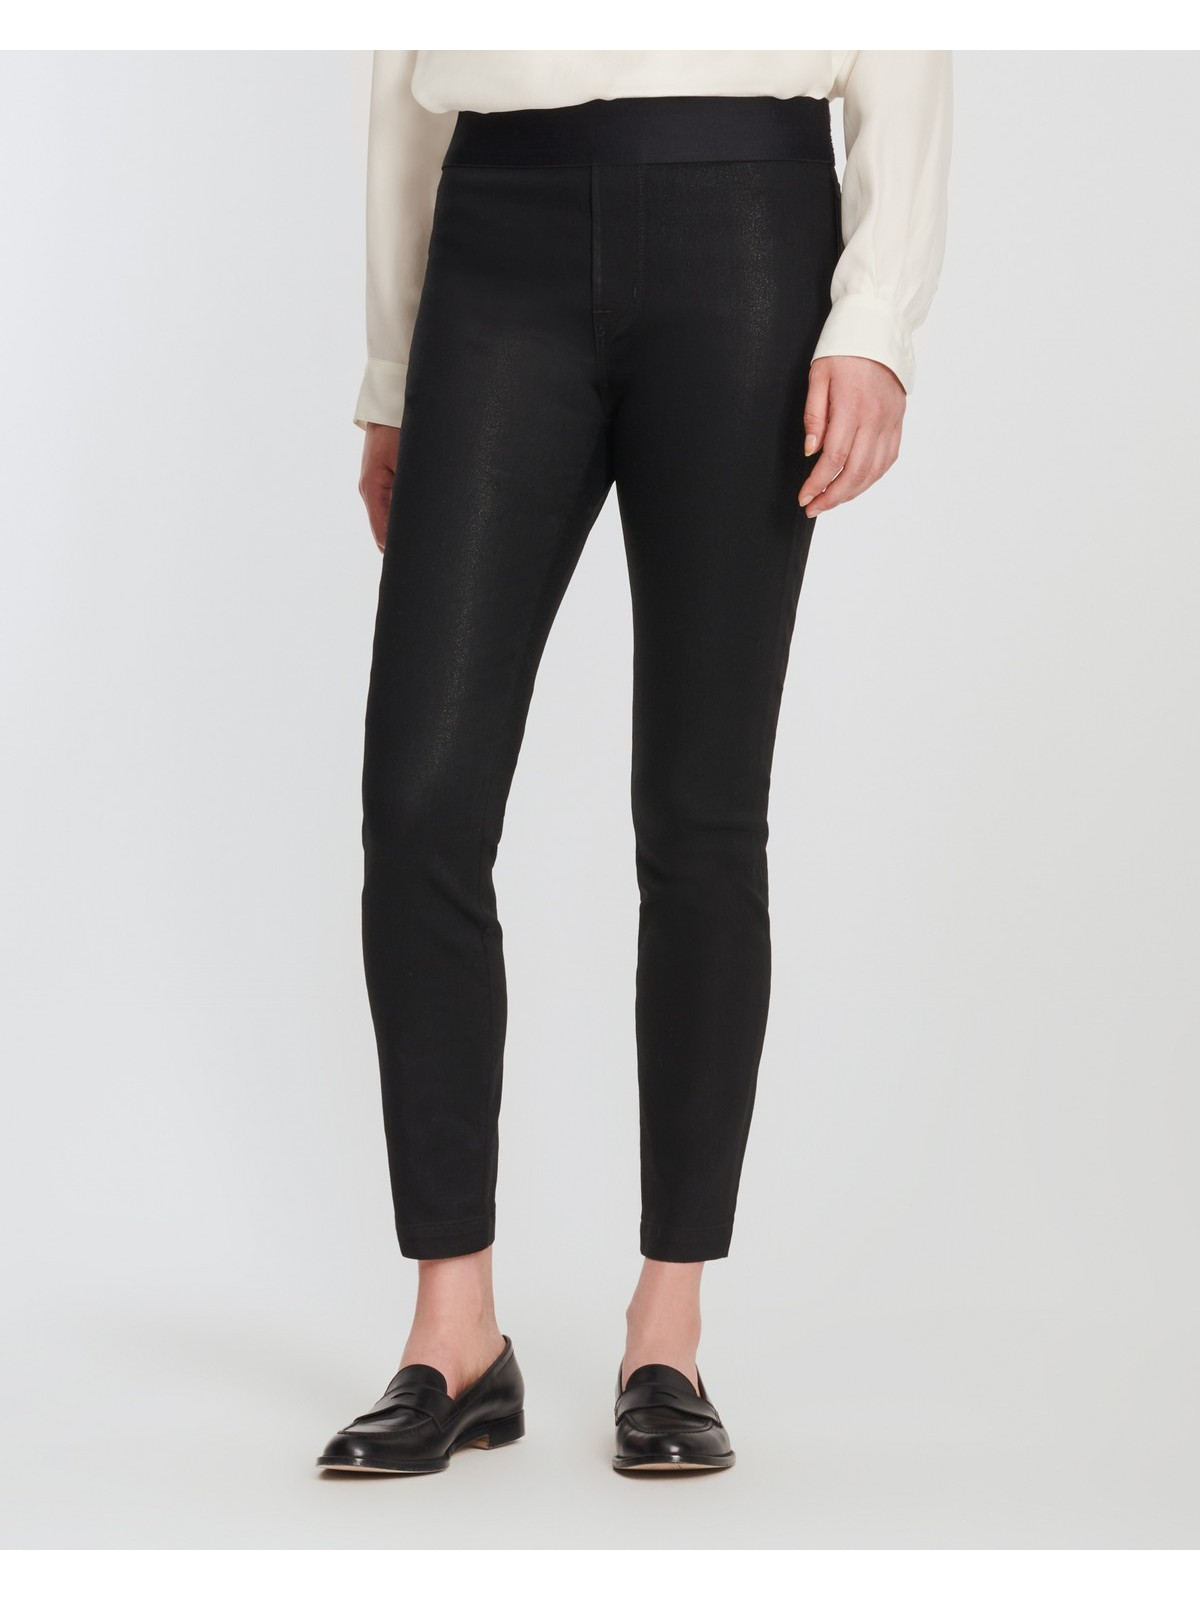 J-brand - DELLAH - Legging coated high rise